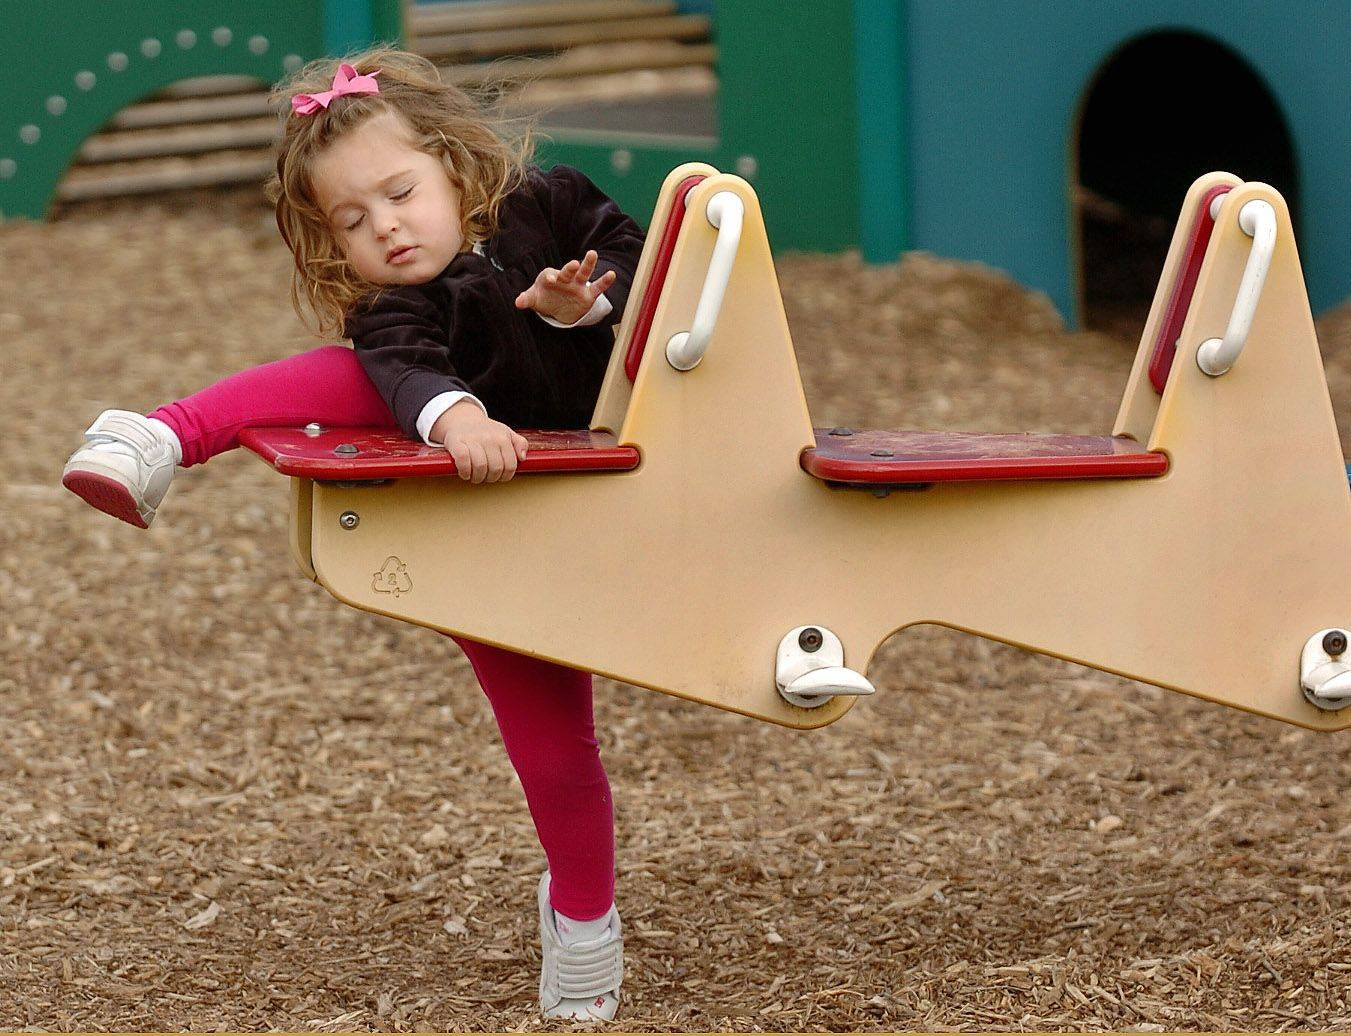 Two-year-old Reese Ginsberg struggles to climb aboard a teeter-totter in Virginia Terrace Park in Arlington Heights on an unseasonably-warm St. Patrick's Day.